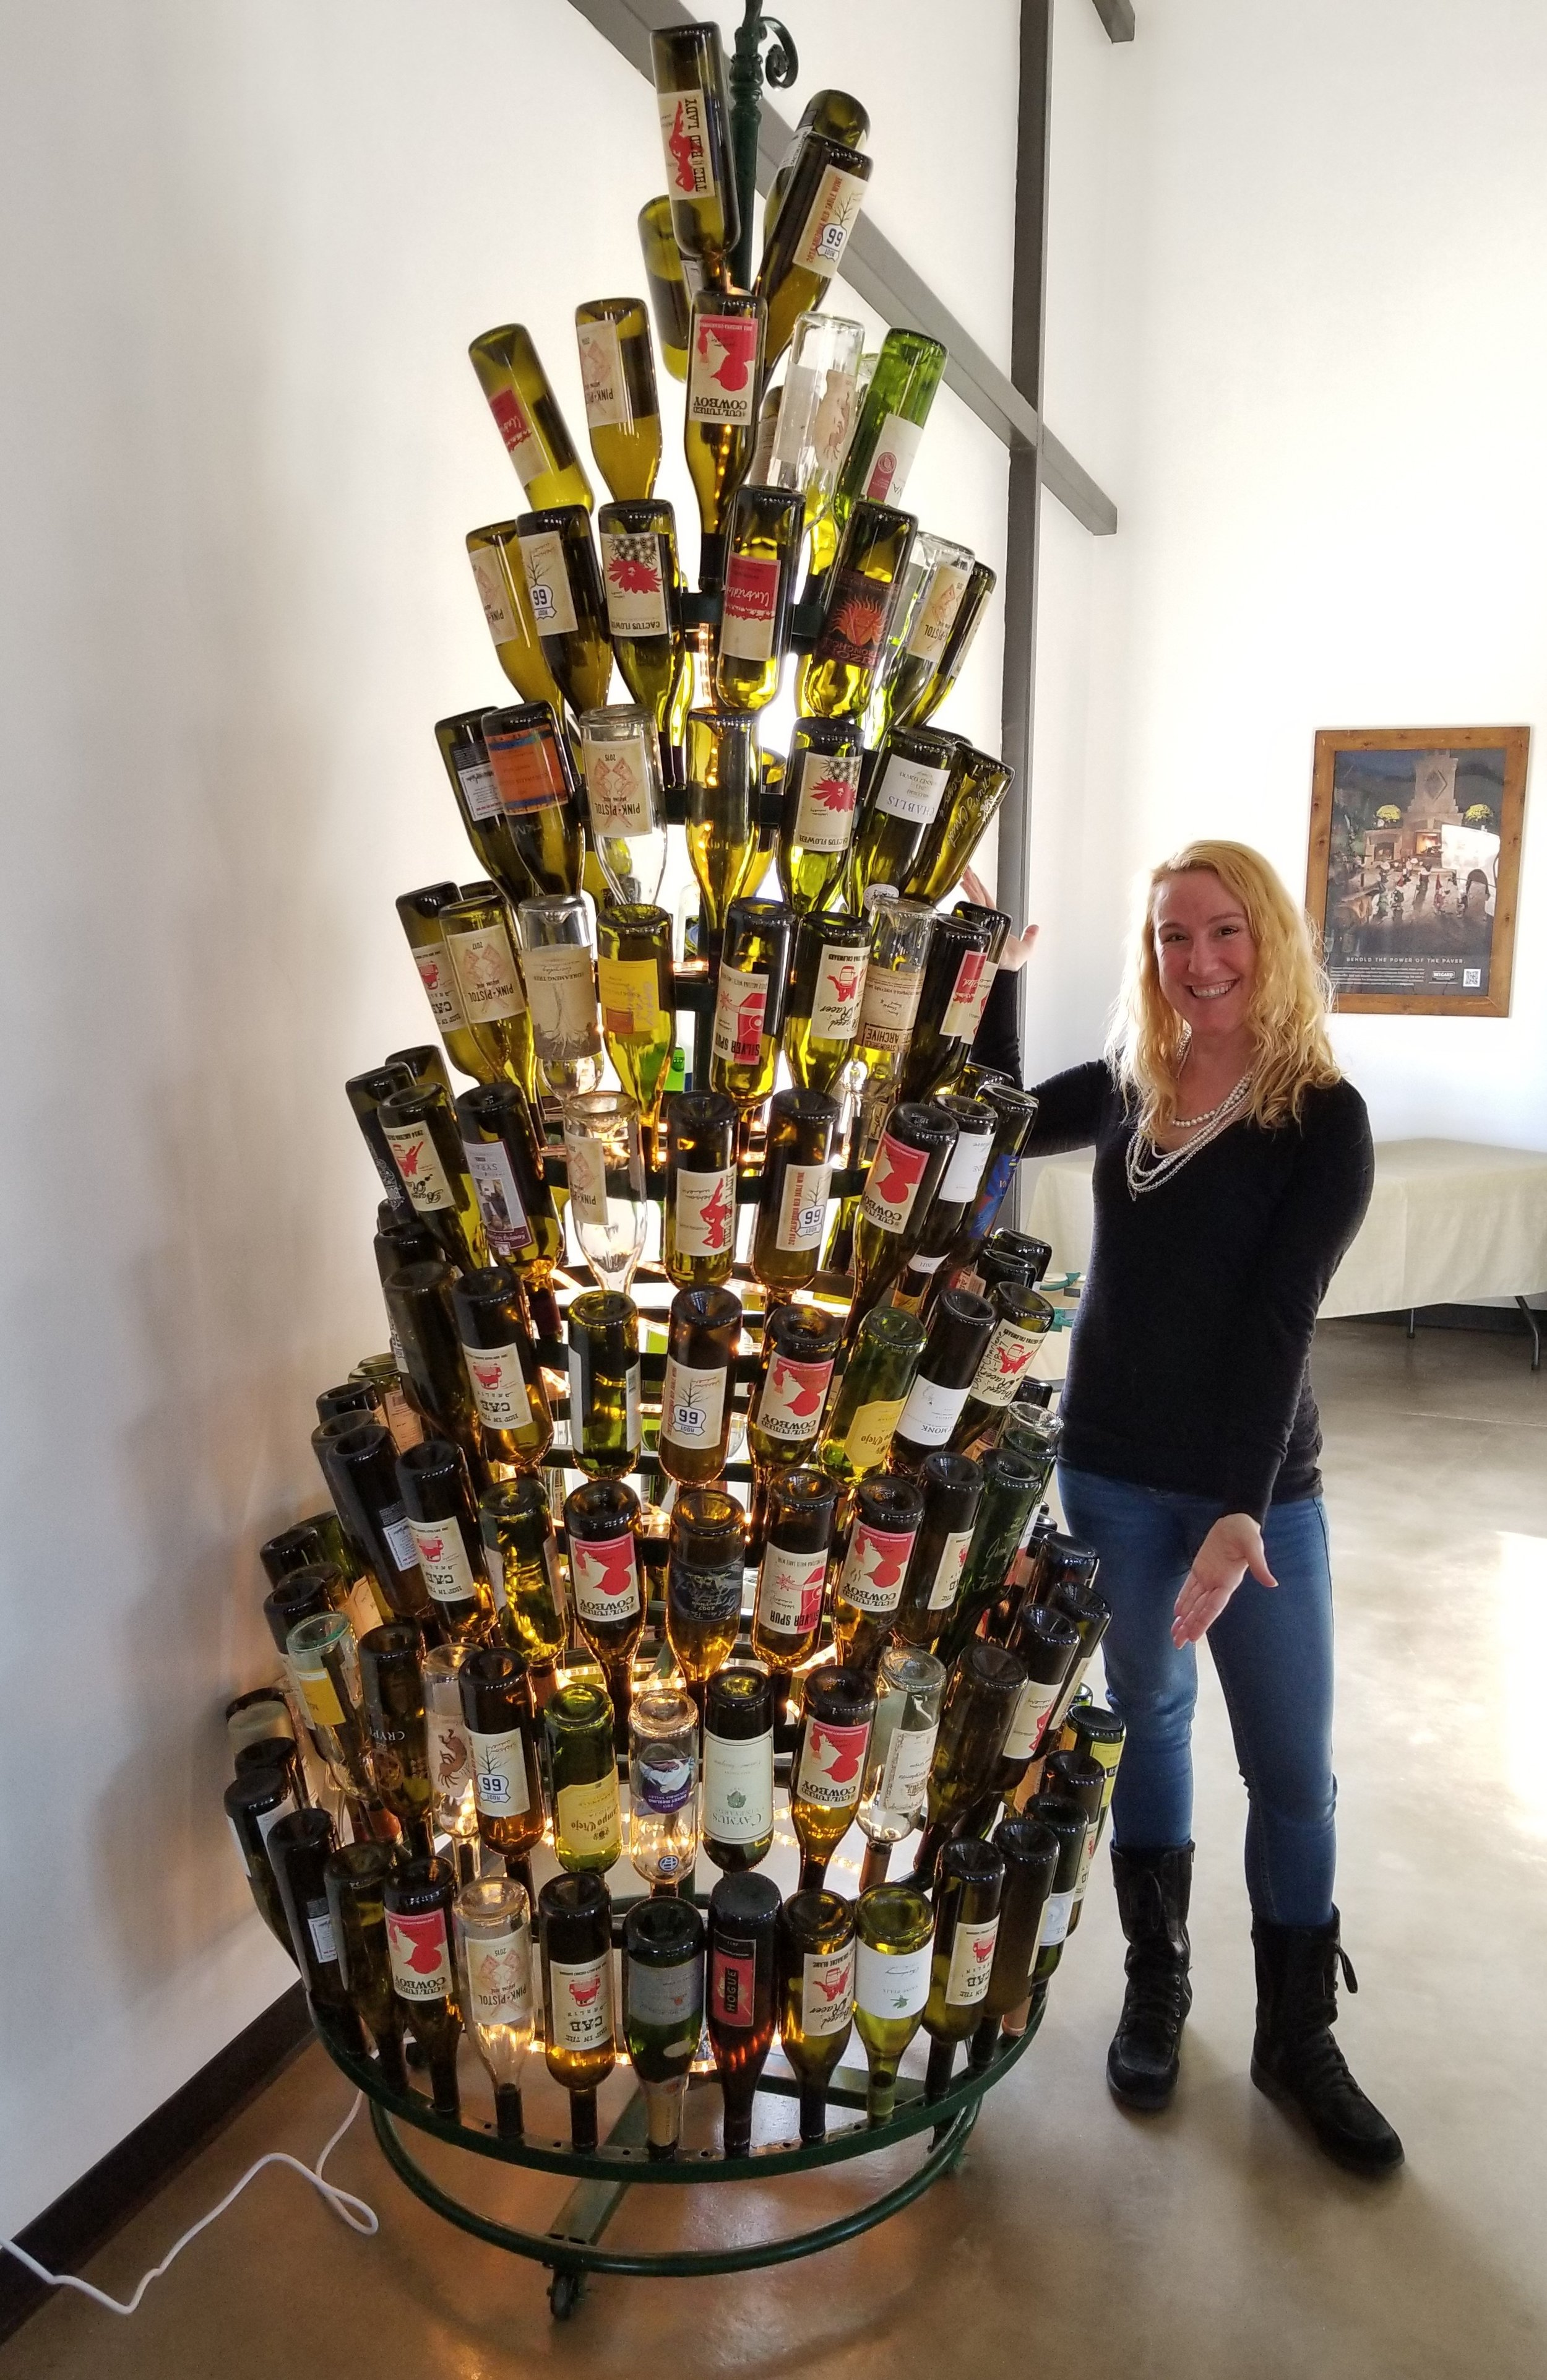 I loved this tree made out of wine bottles